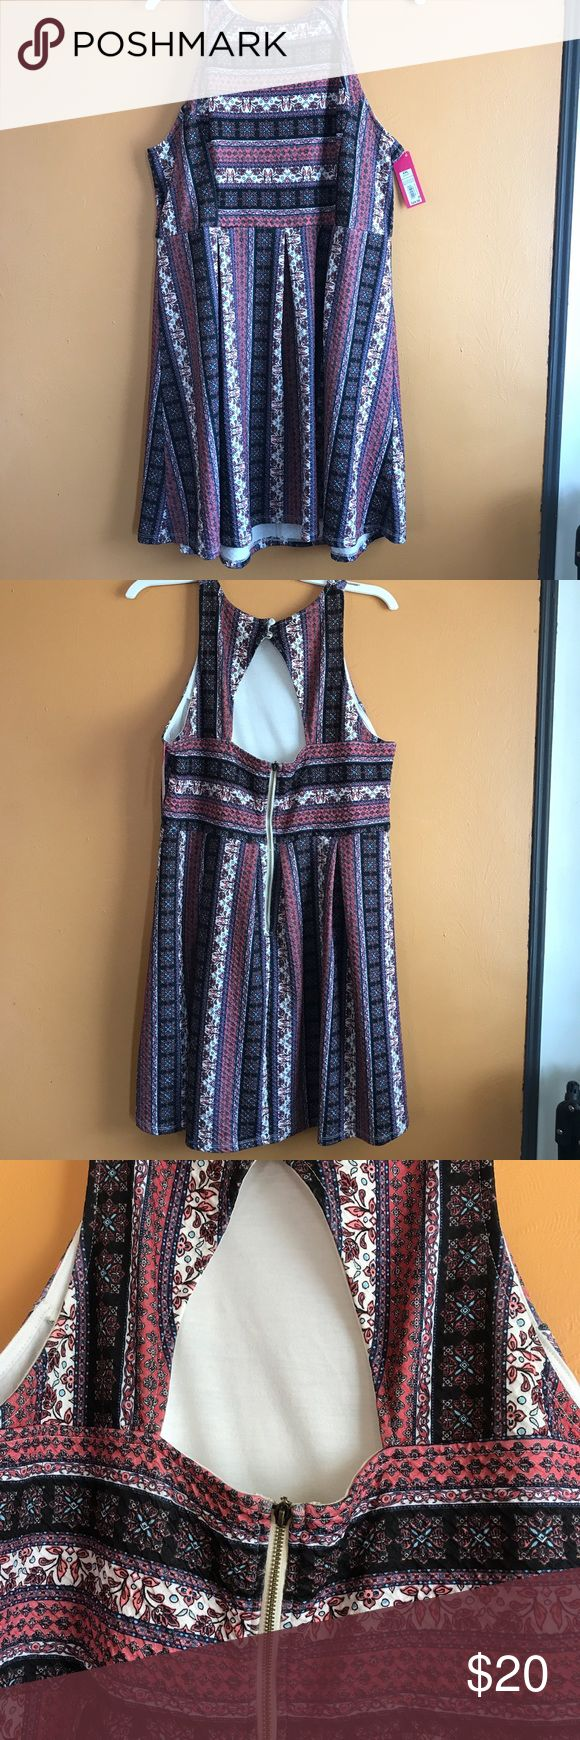 Brand new Aztek print cut out skater dress Brand new skater dress in ethnic tribal aztek print. Cut out on back. A-line shape. Perfect for summer wedding, party, girls night out. Textured fabric. Colors are burgundy, purple, blue and red. Dresses